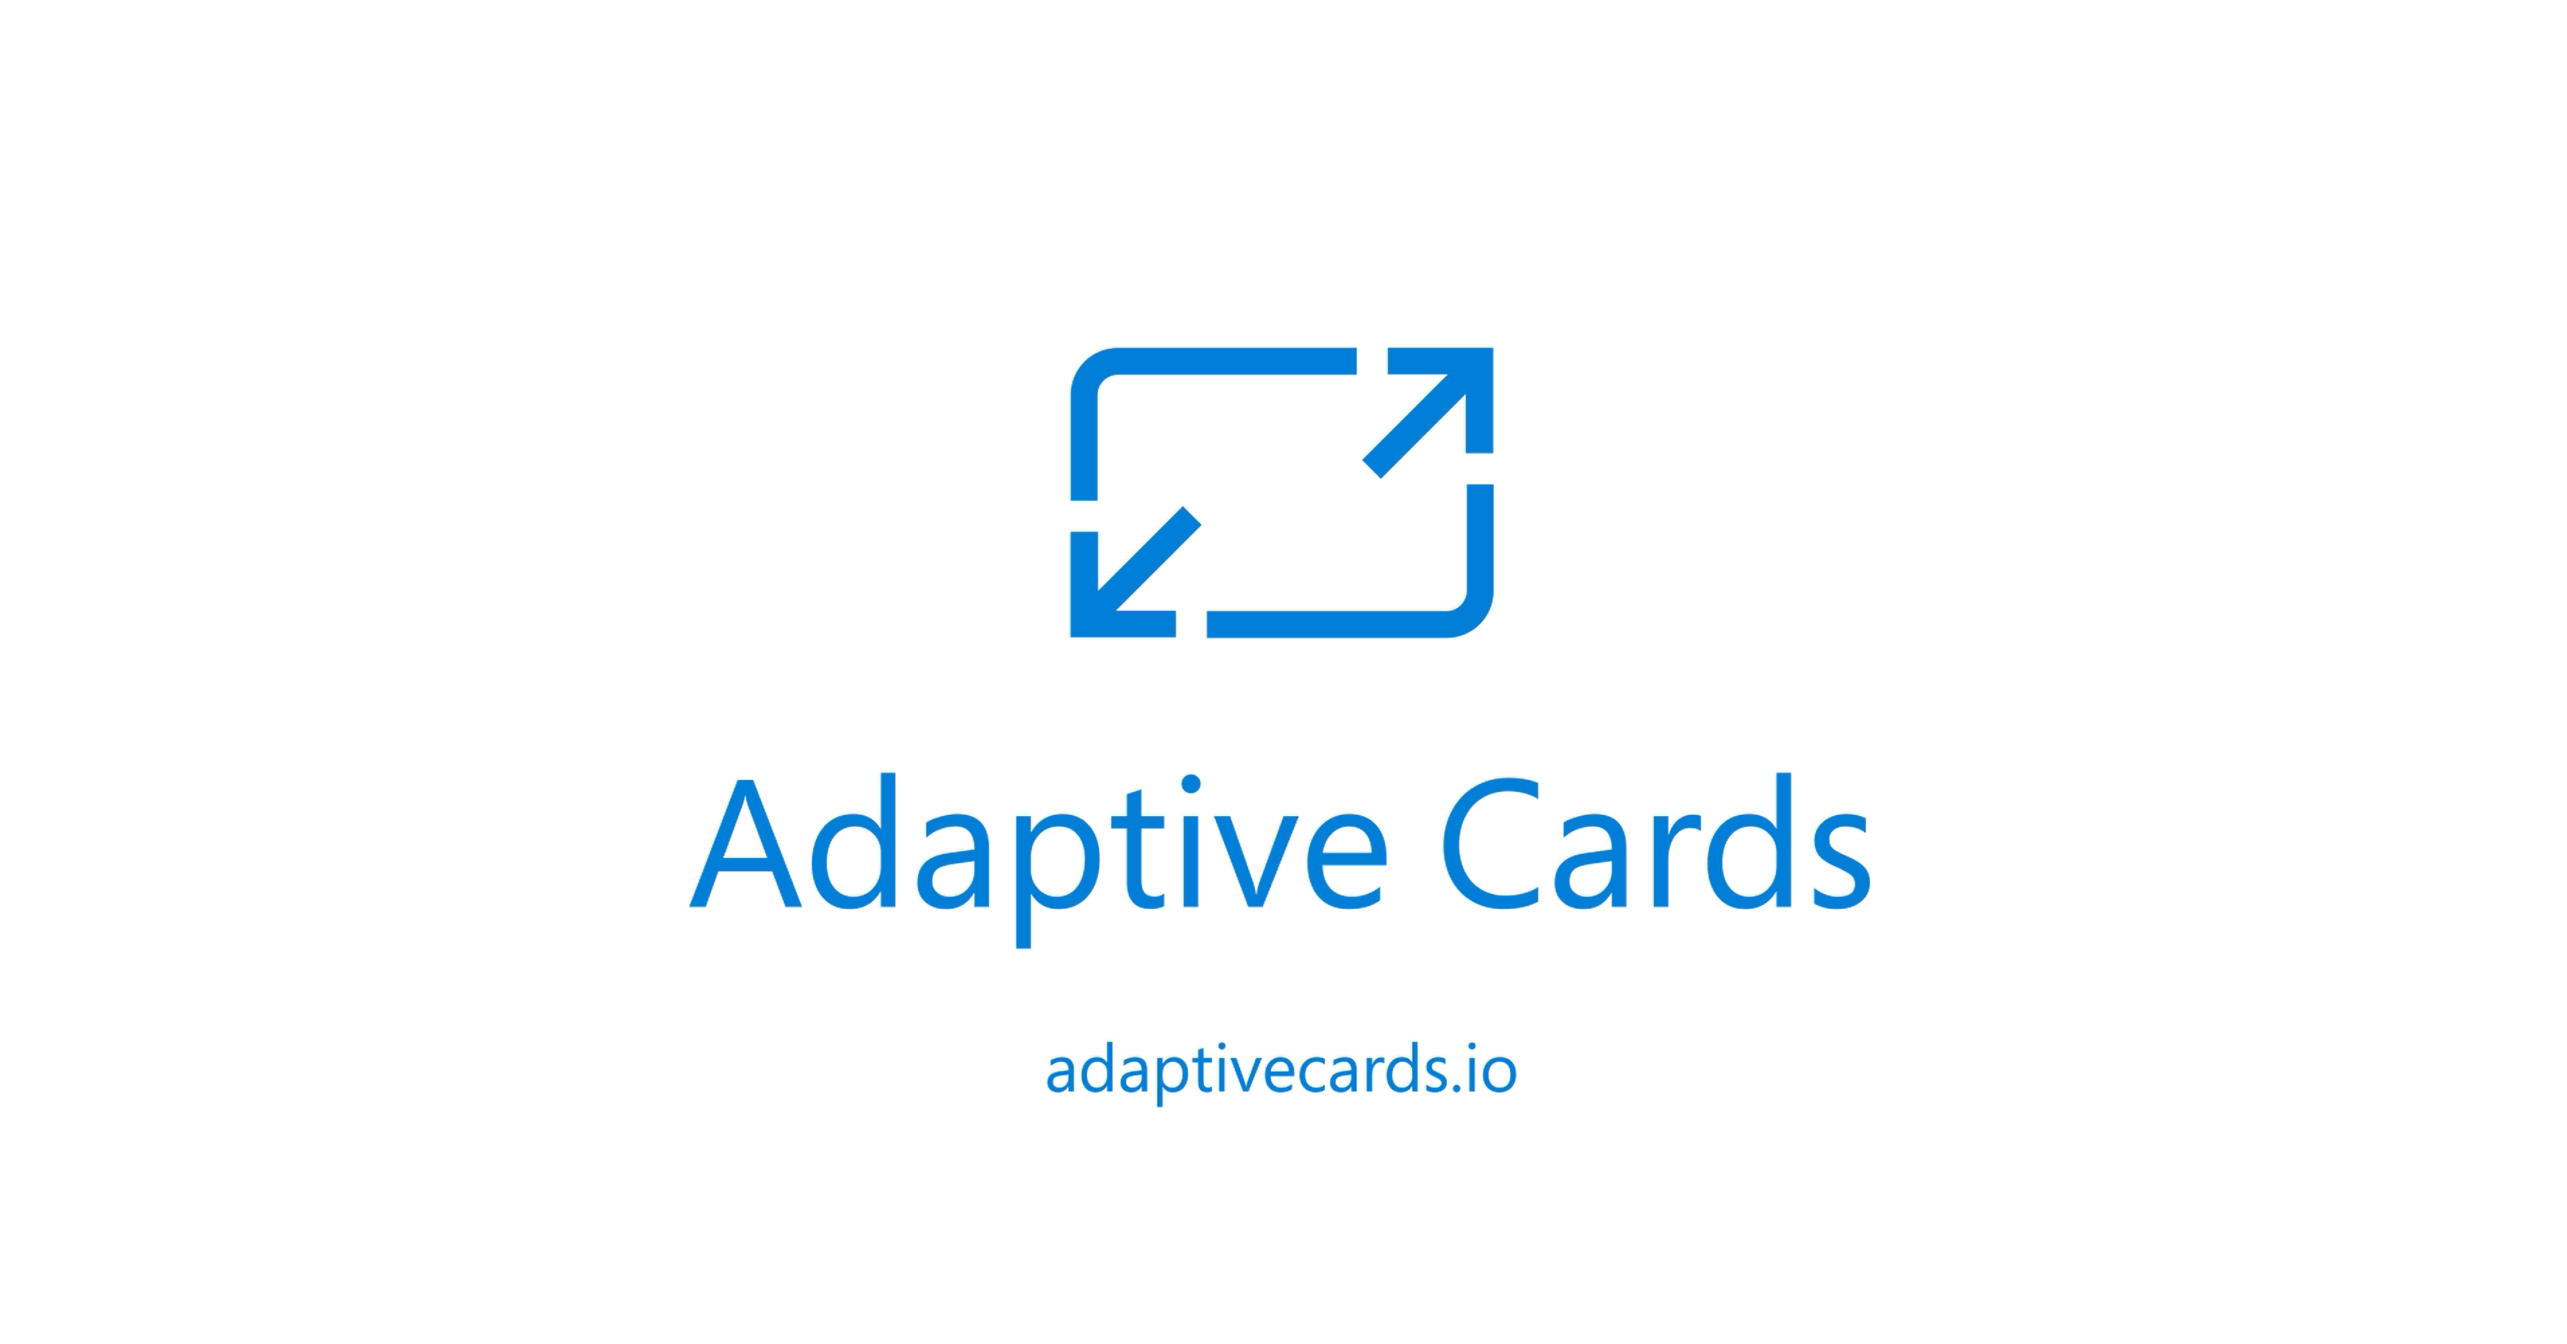 Adaptive Cards